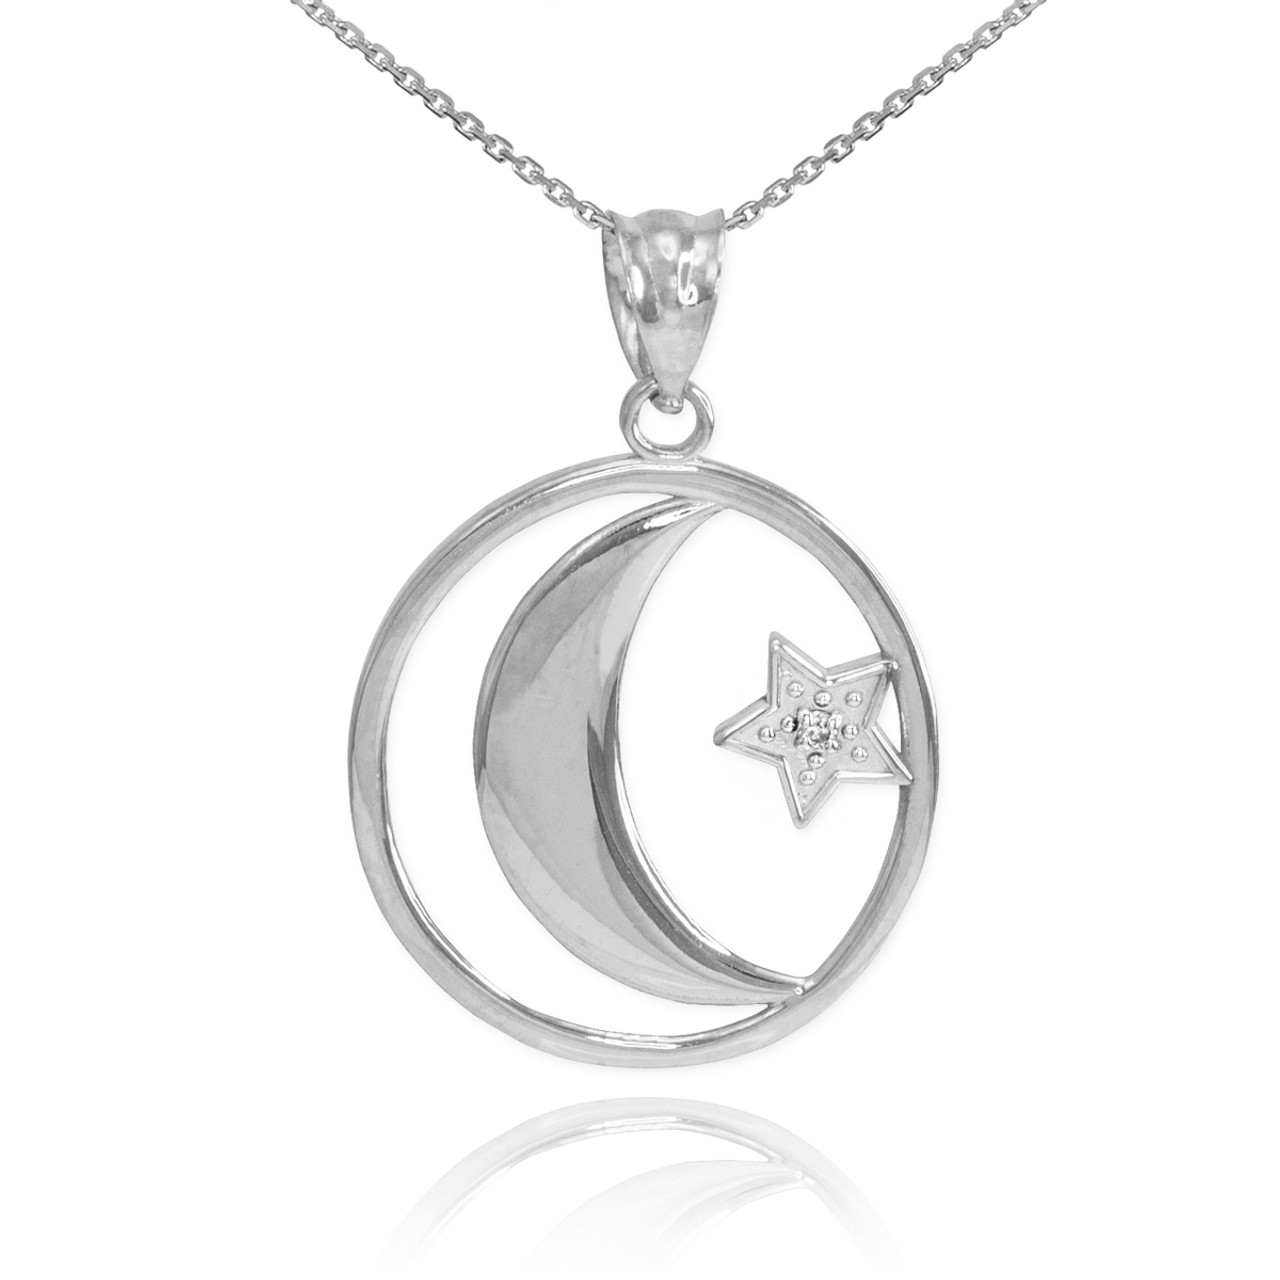 White gold crescent moon with diamond star pendant necklace white gold crescent moon with diamond star islamic pendant necklace aloadofball Choice Image